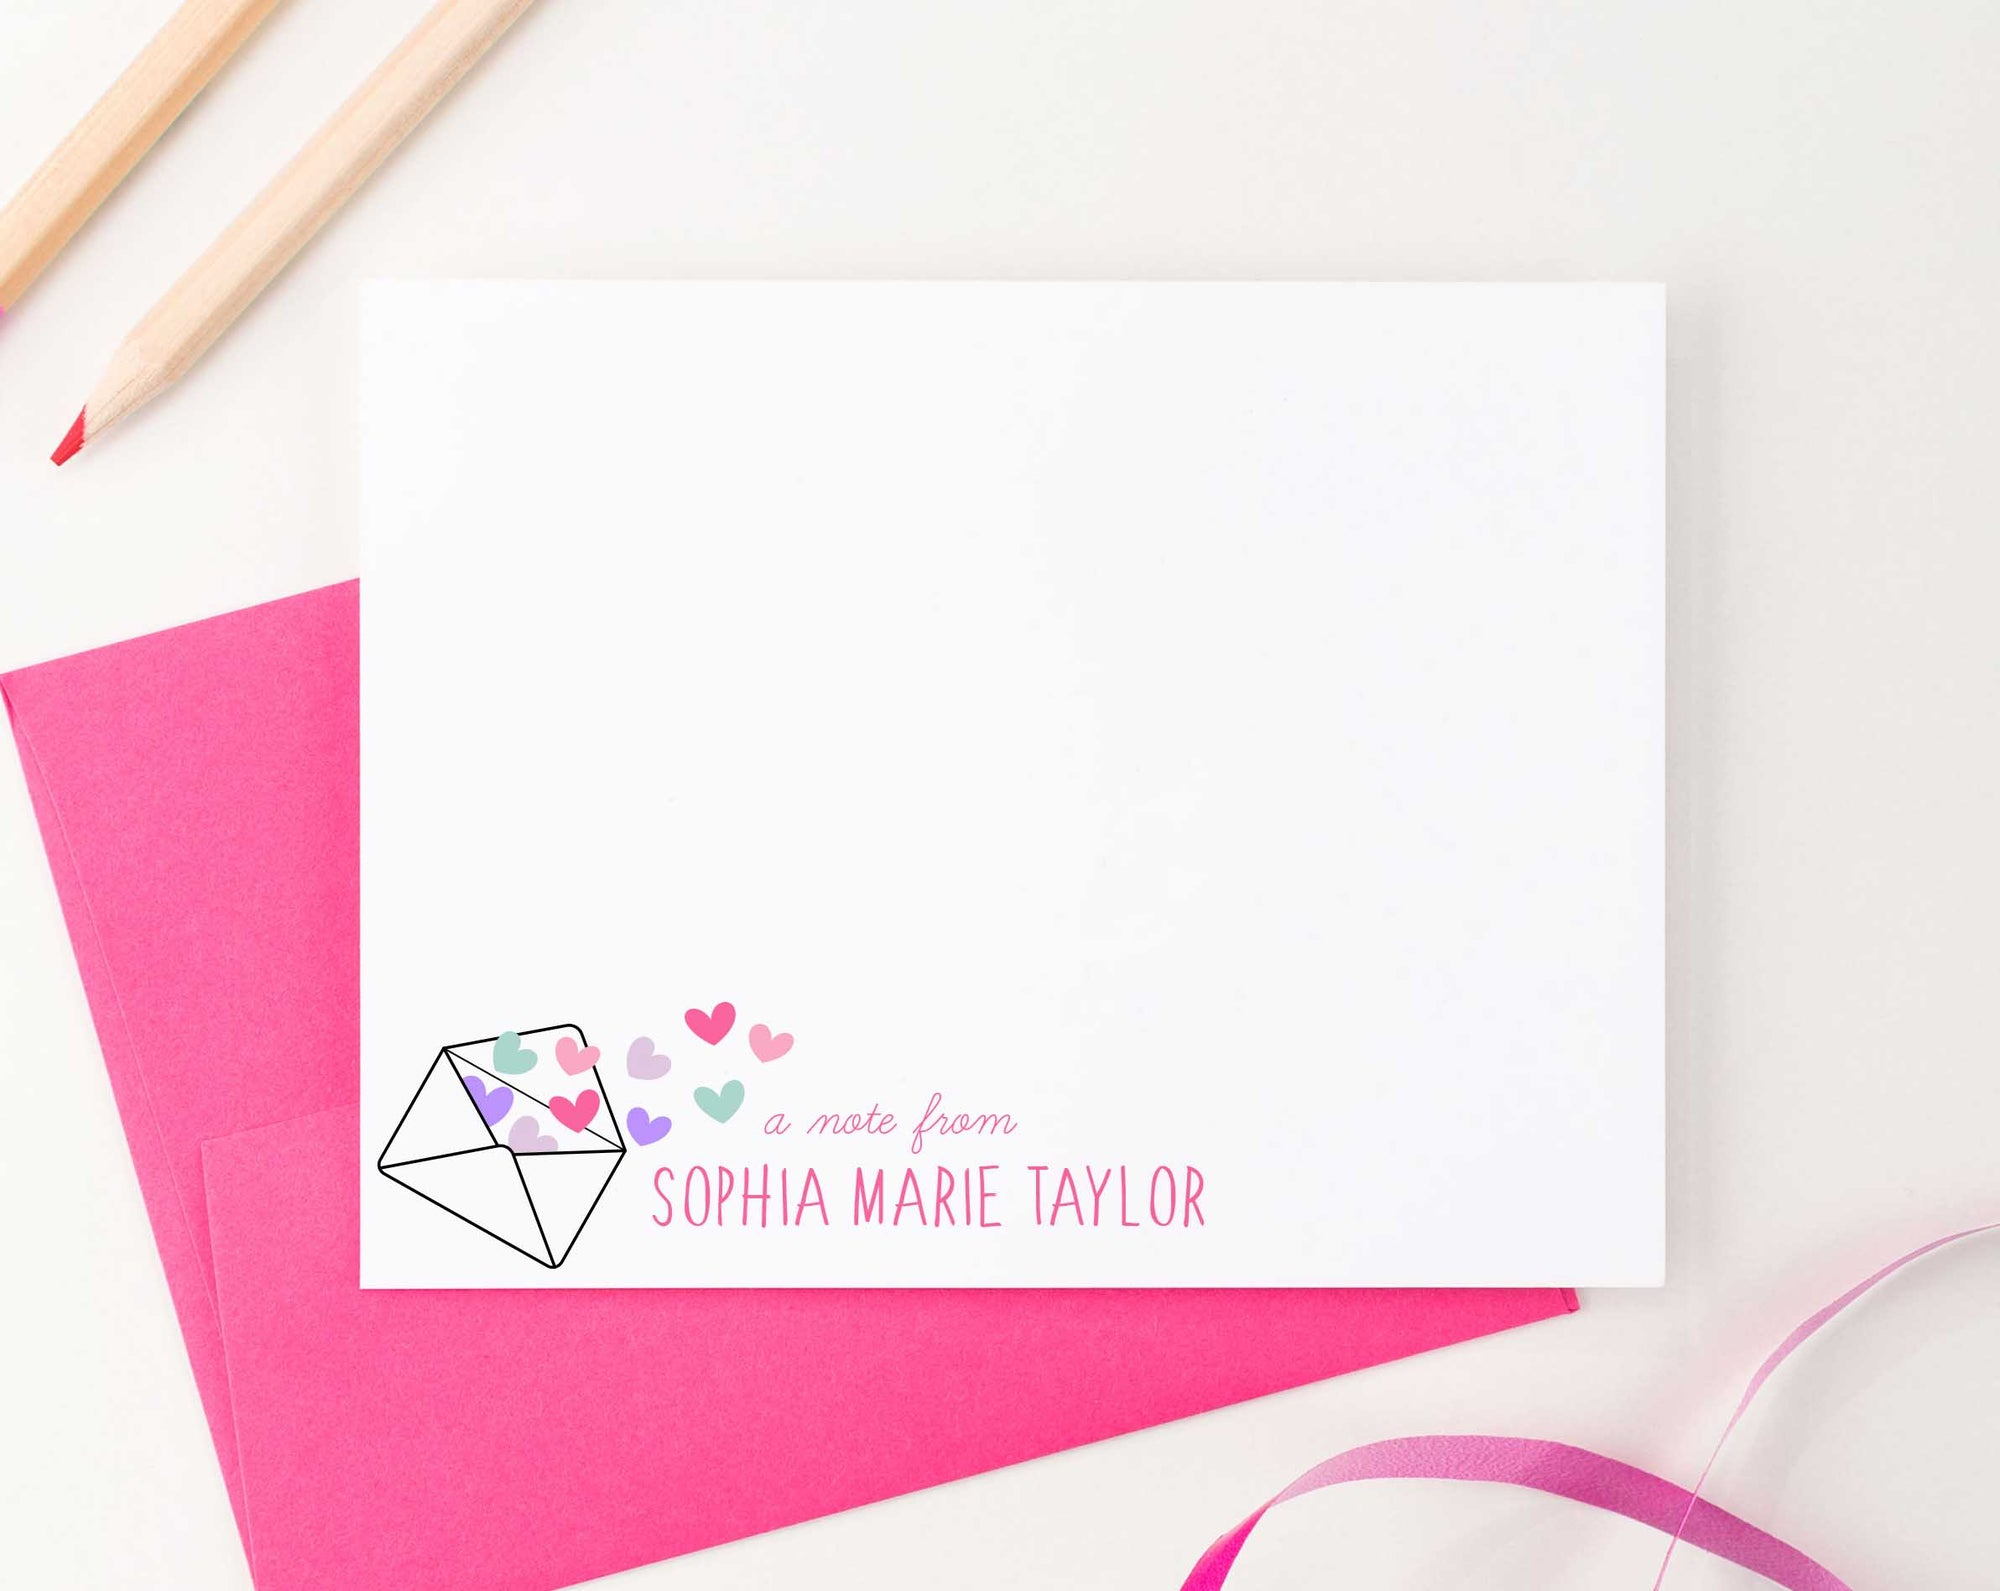 KS123 a note from note cards personalized with envelope and heart shear cute fun 4